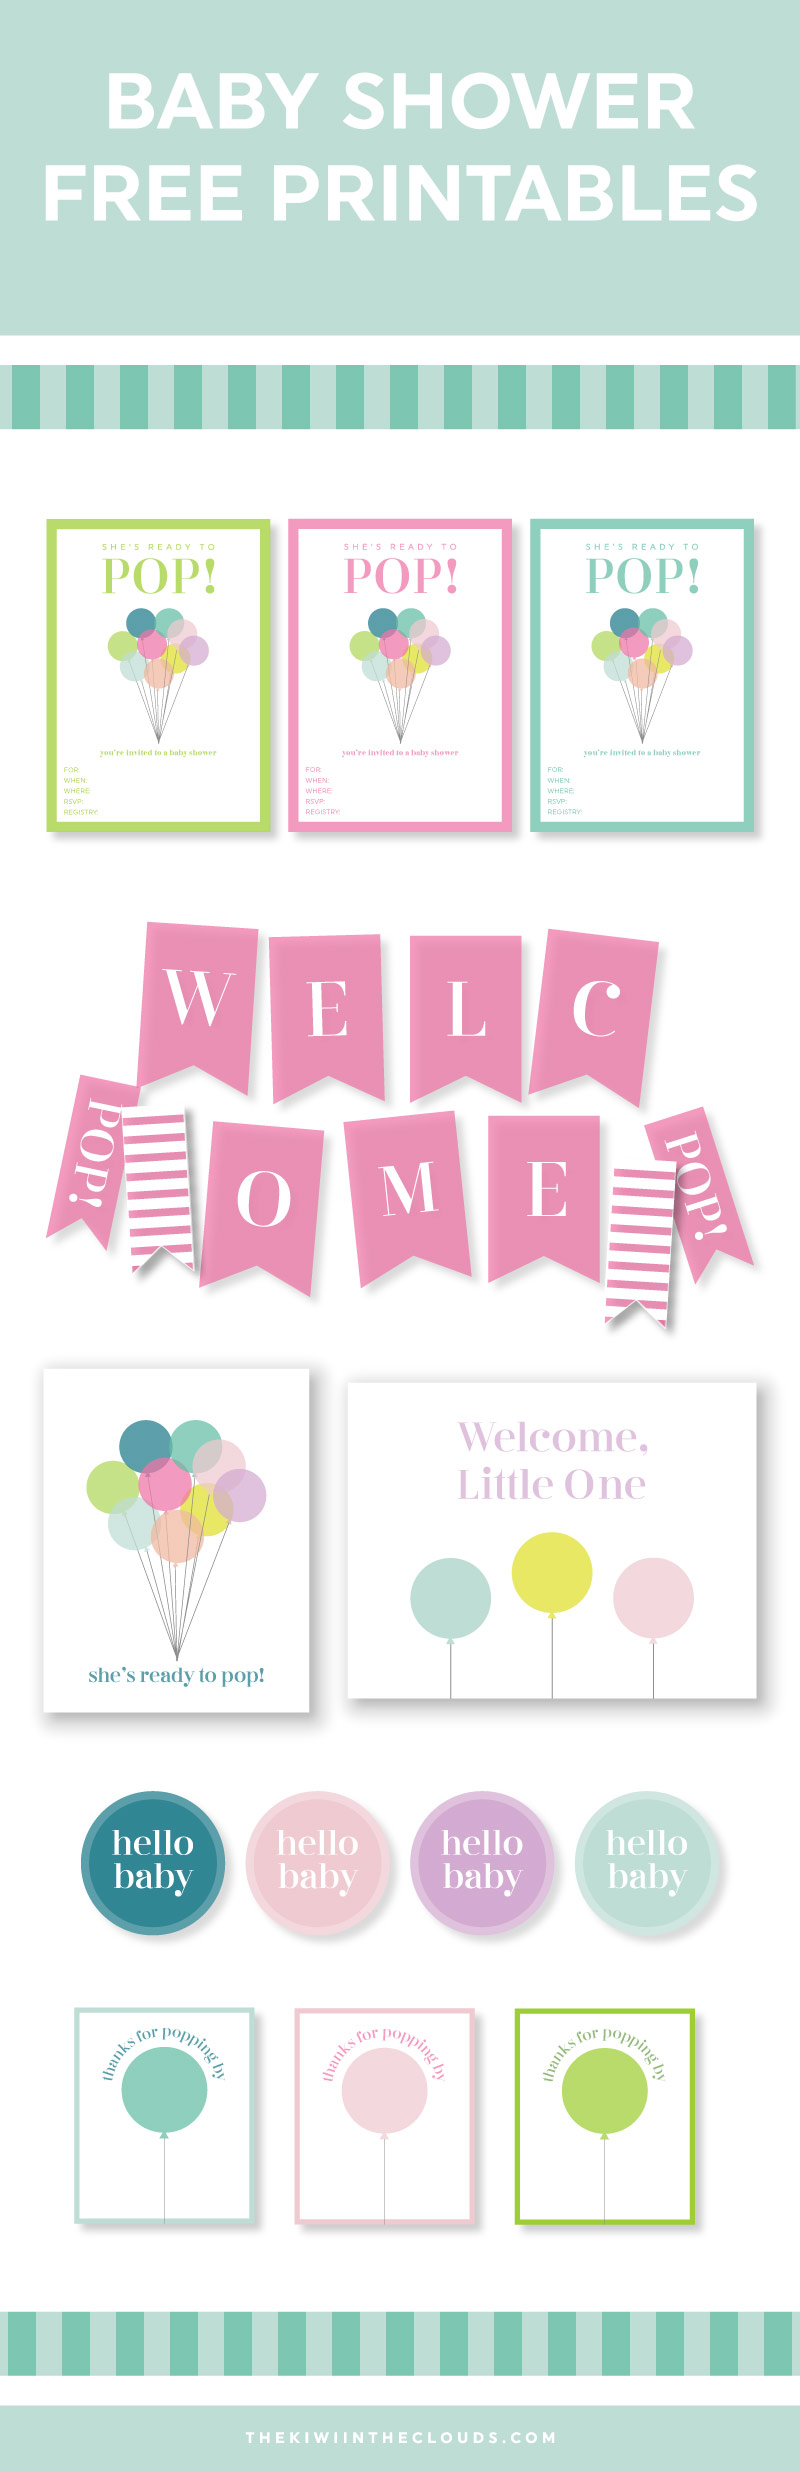 It is a graphic of Universal Baby Shower Printouts